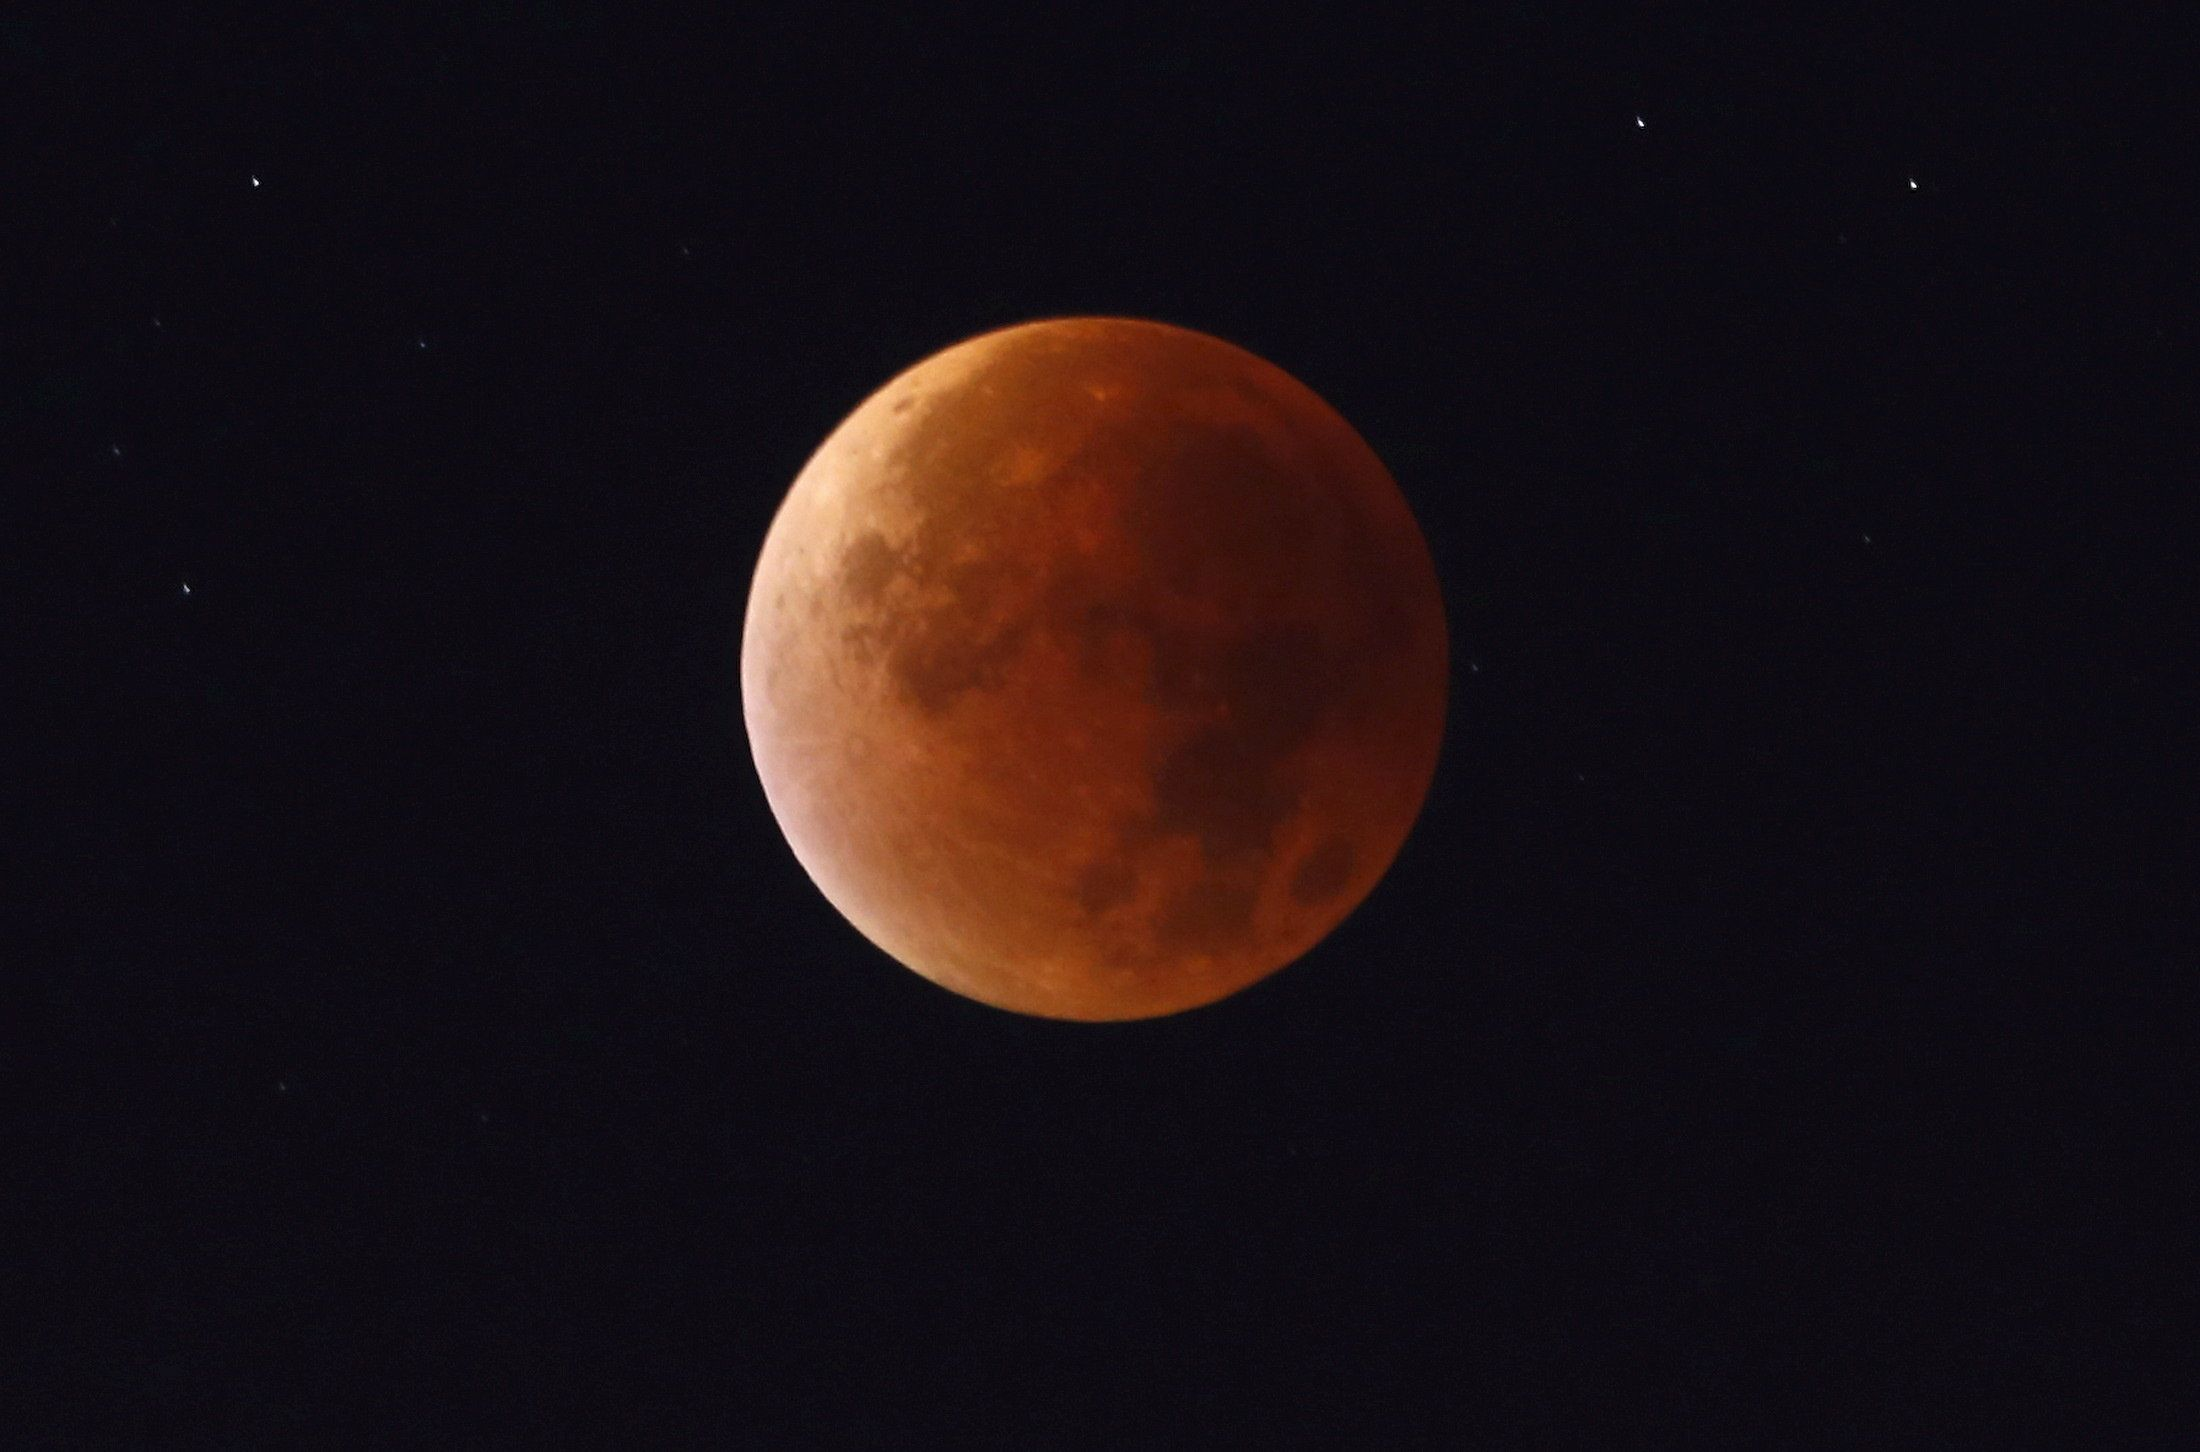 The Longest Blood Moon In A Century is Happening This